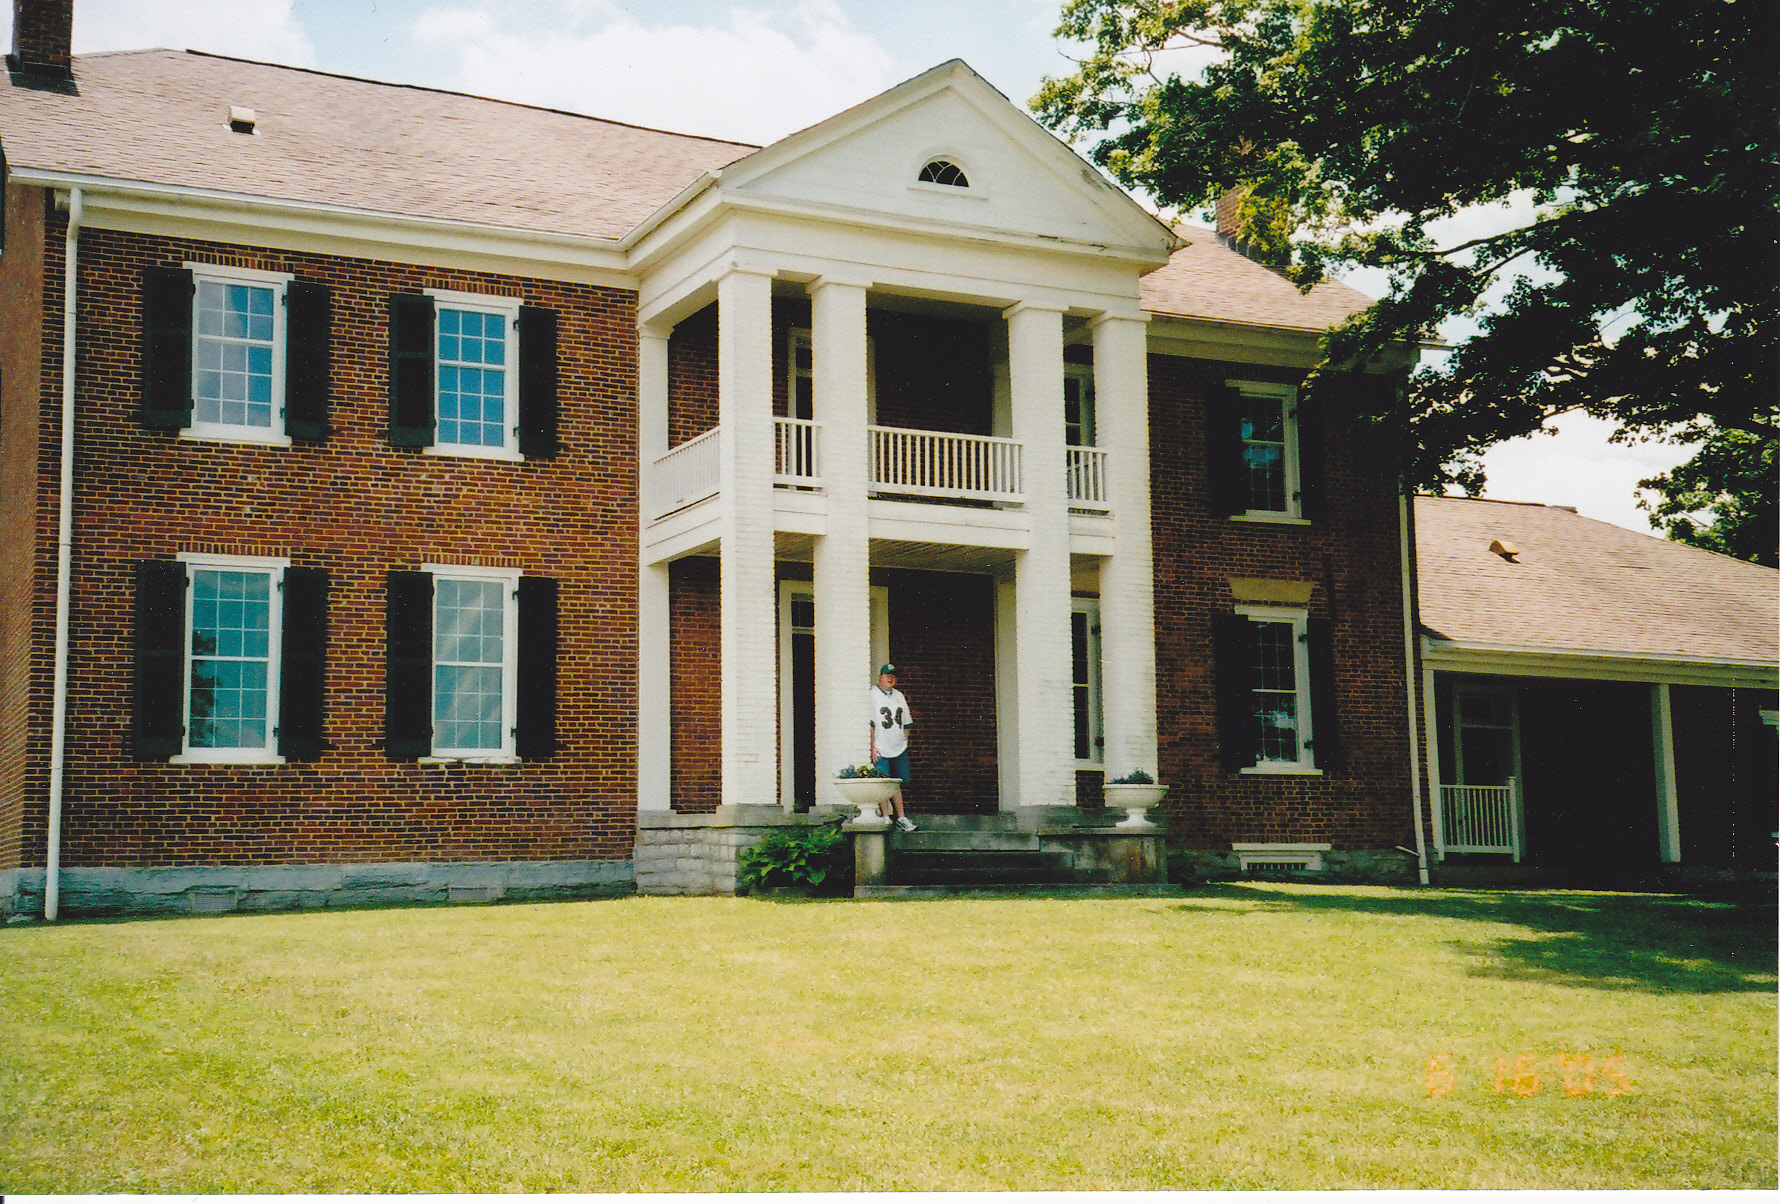 2005 Photo of Pleasant Retreat - Governor William Owsley House in Lancaster, KY